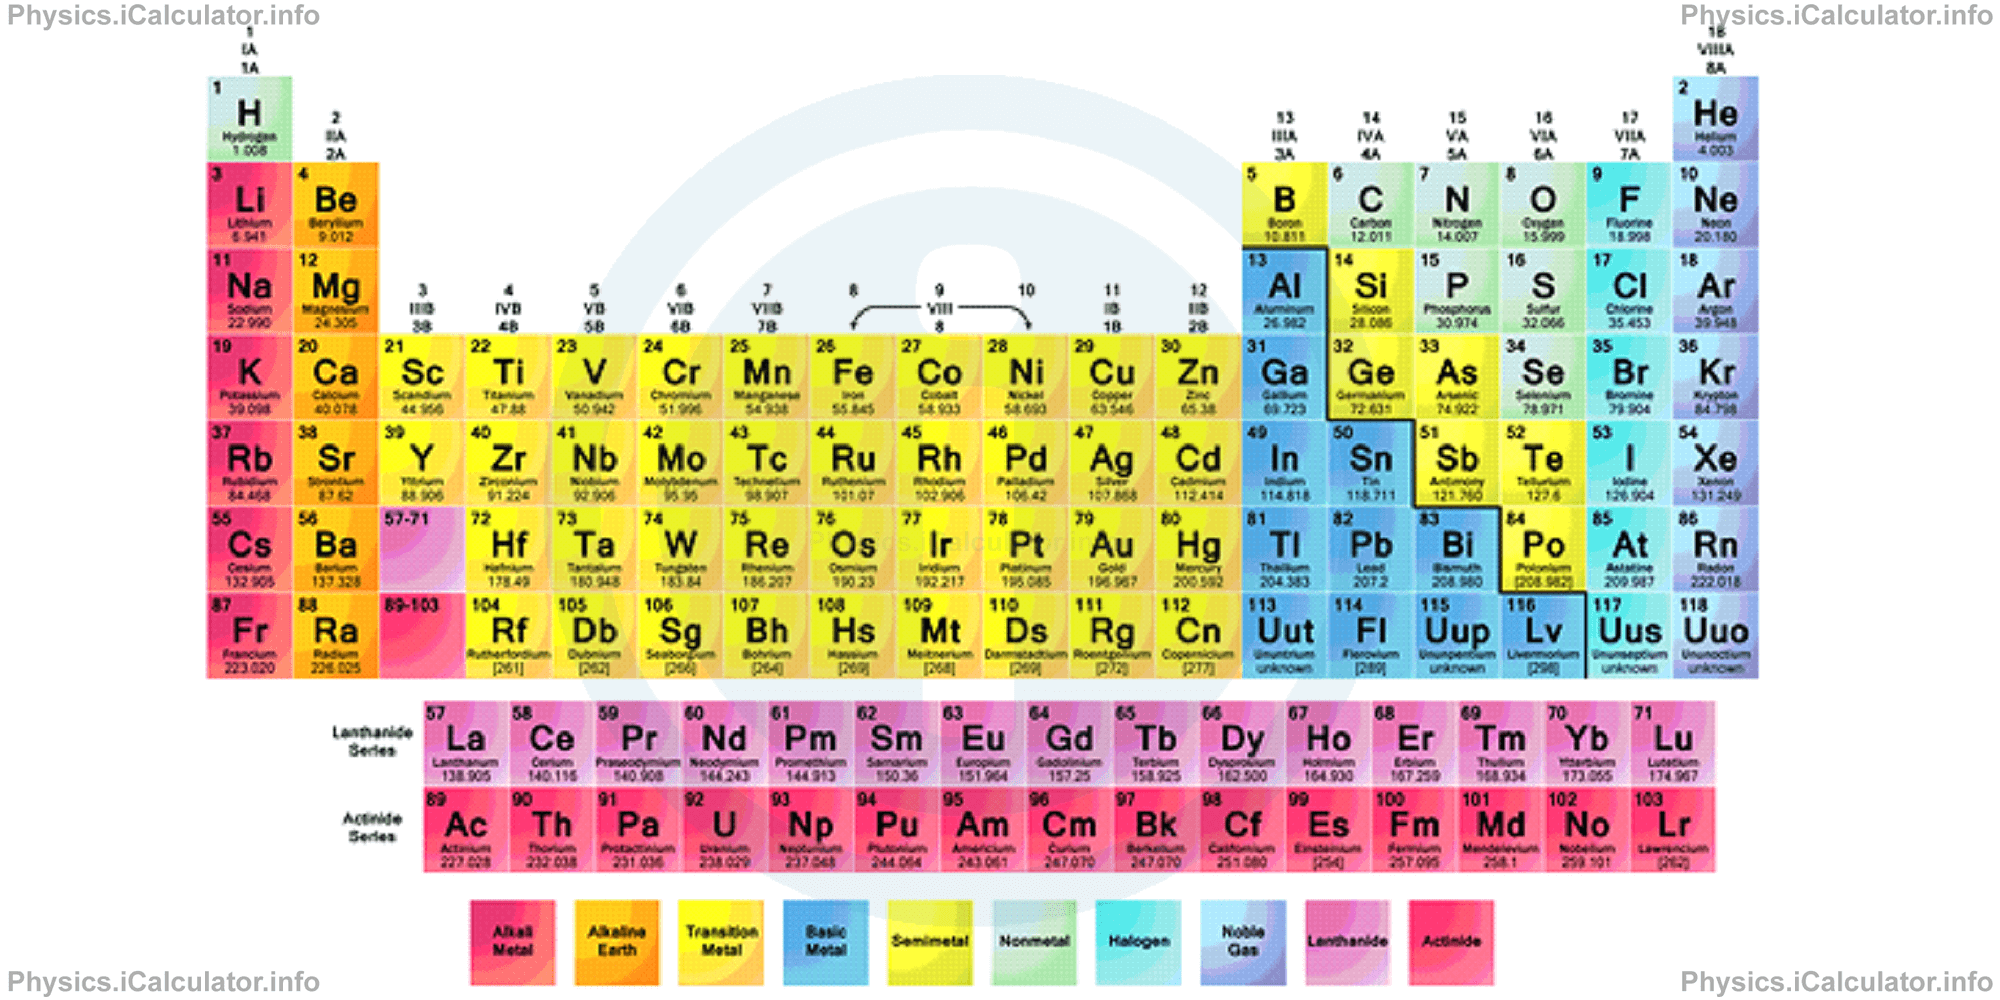 Physics Tutorials: This image provides visual information for the periodic table